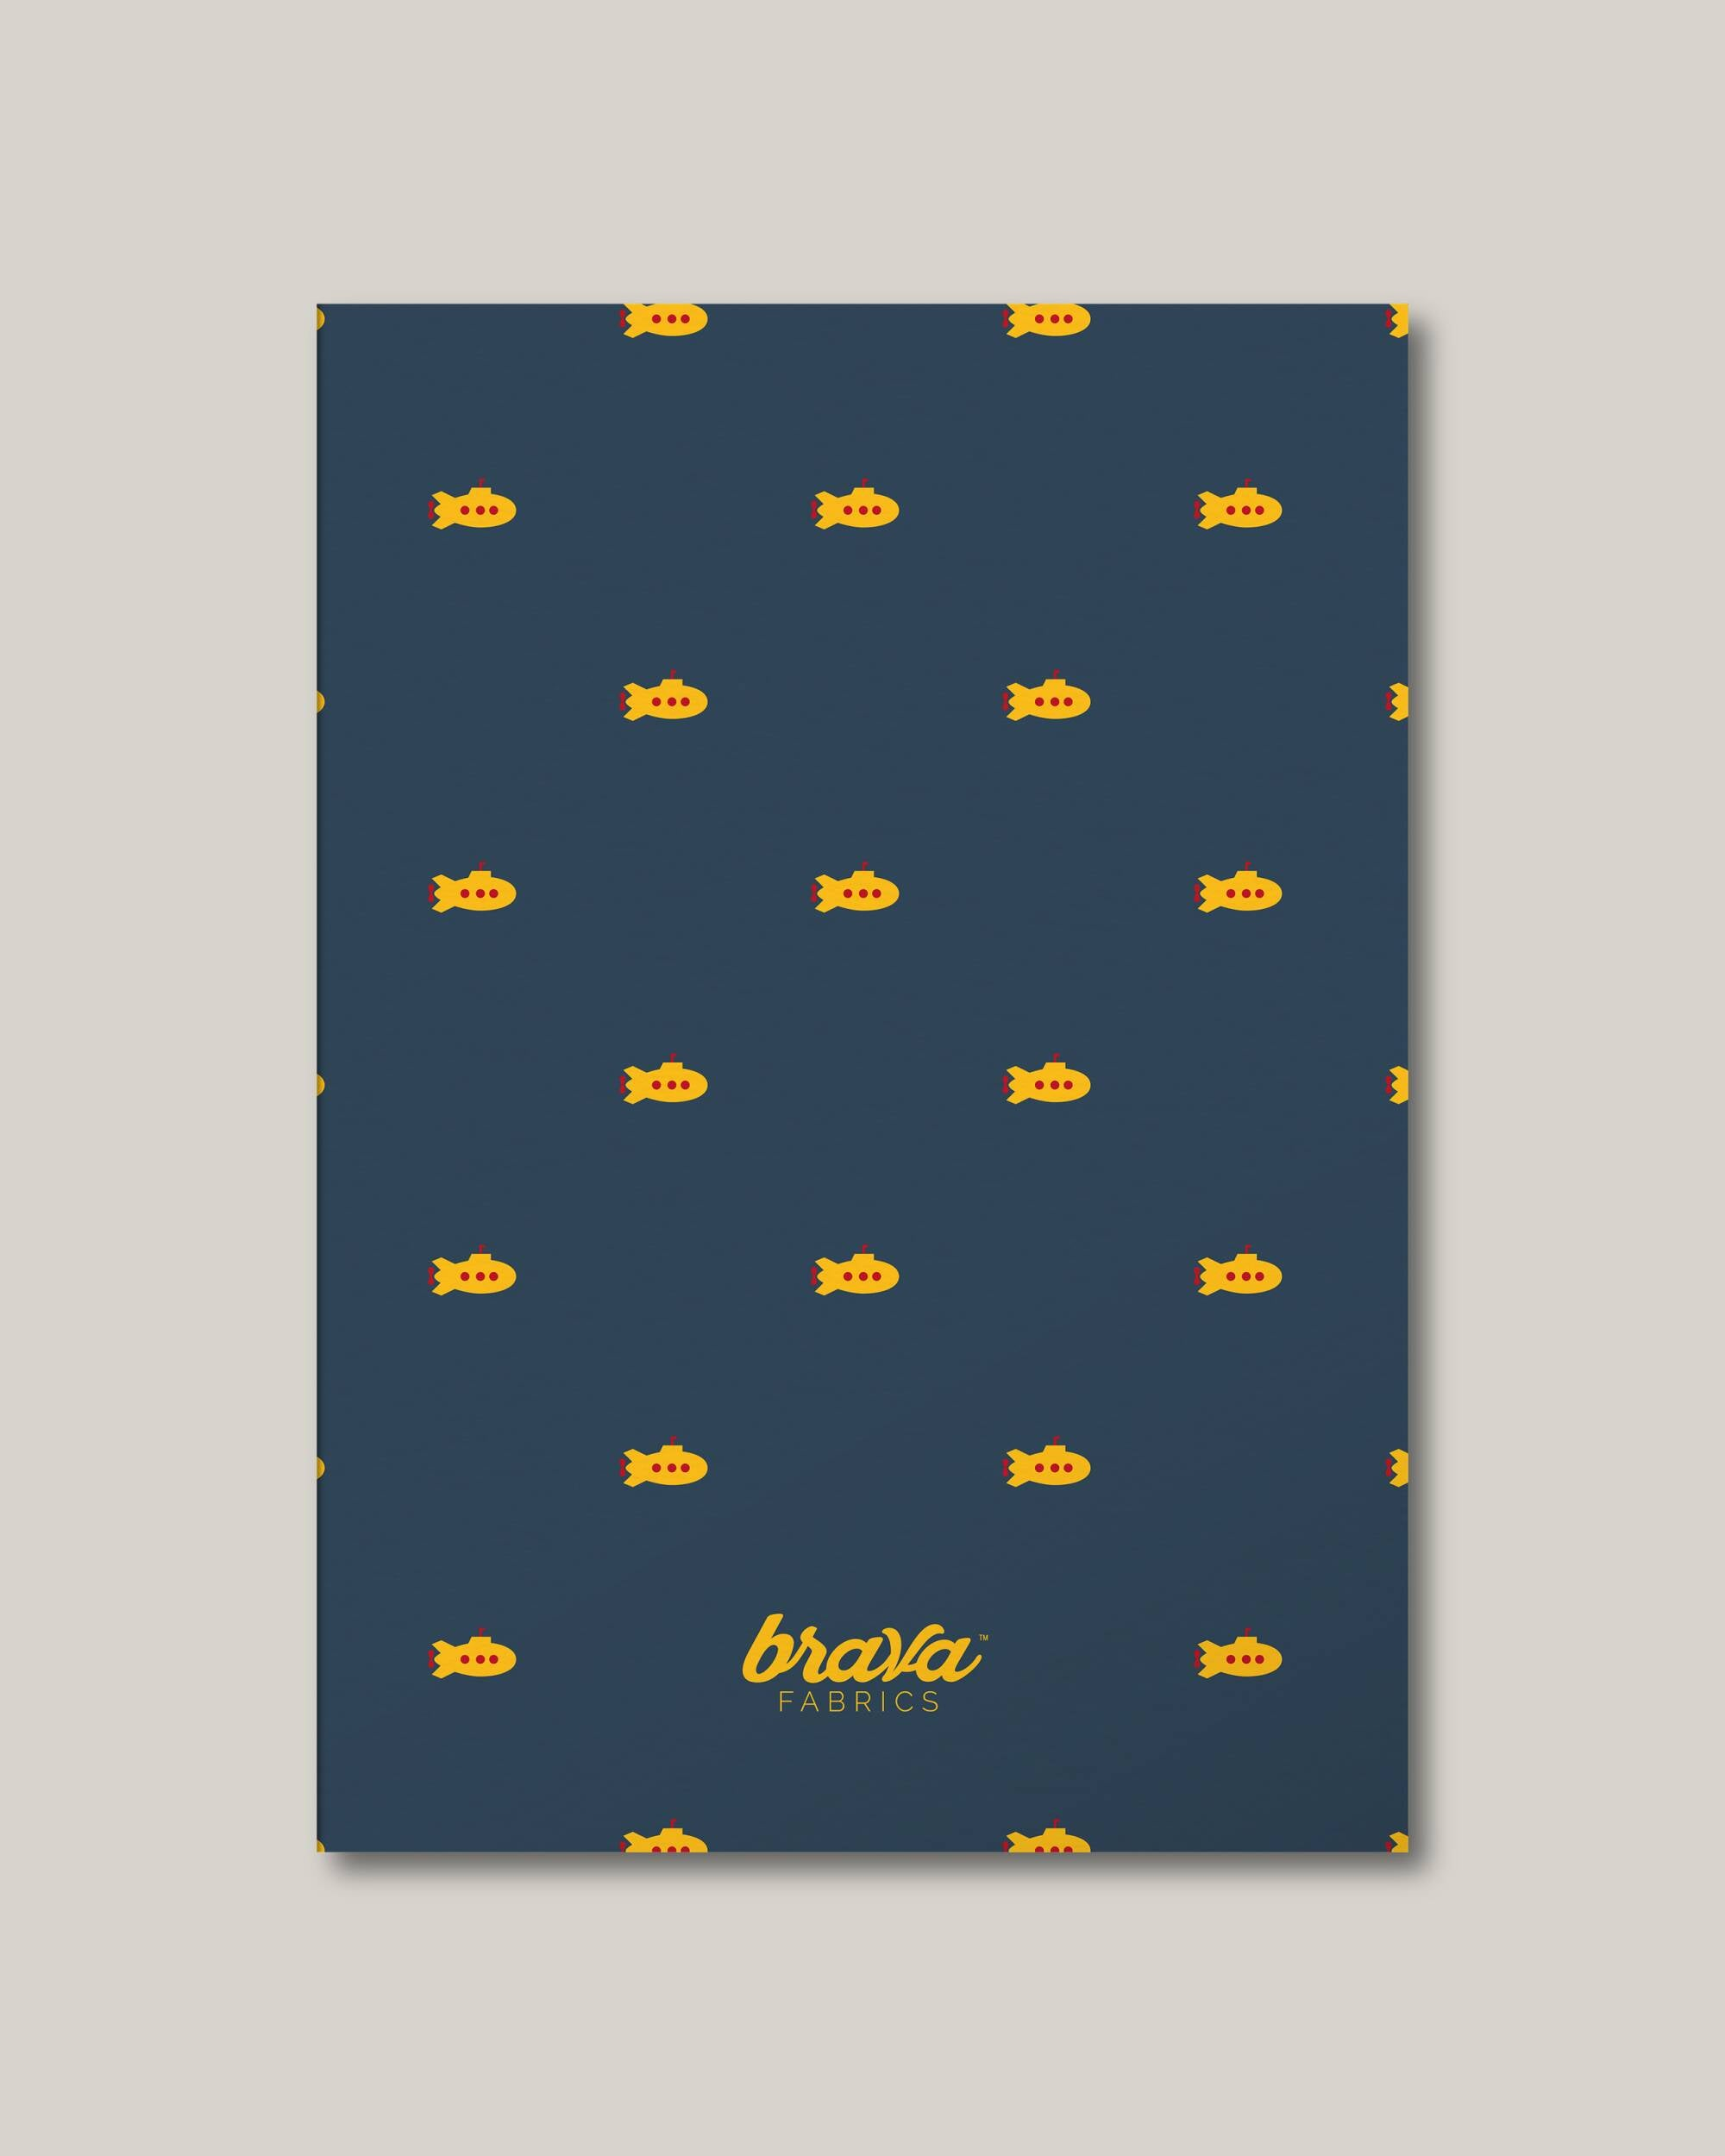 Brava Fabrics - Notebook - Sustainable Notebook - Notebook FSC certified - Model Yellow Submarine